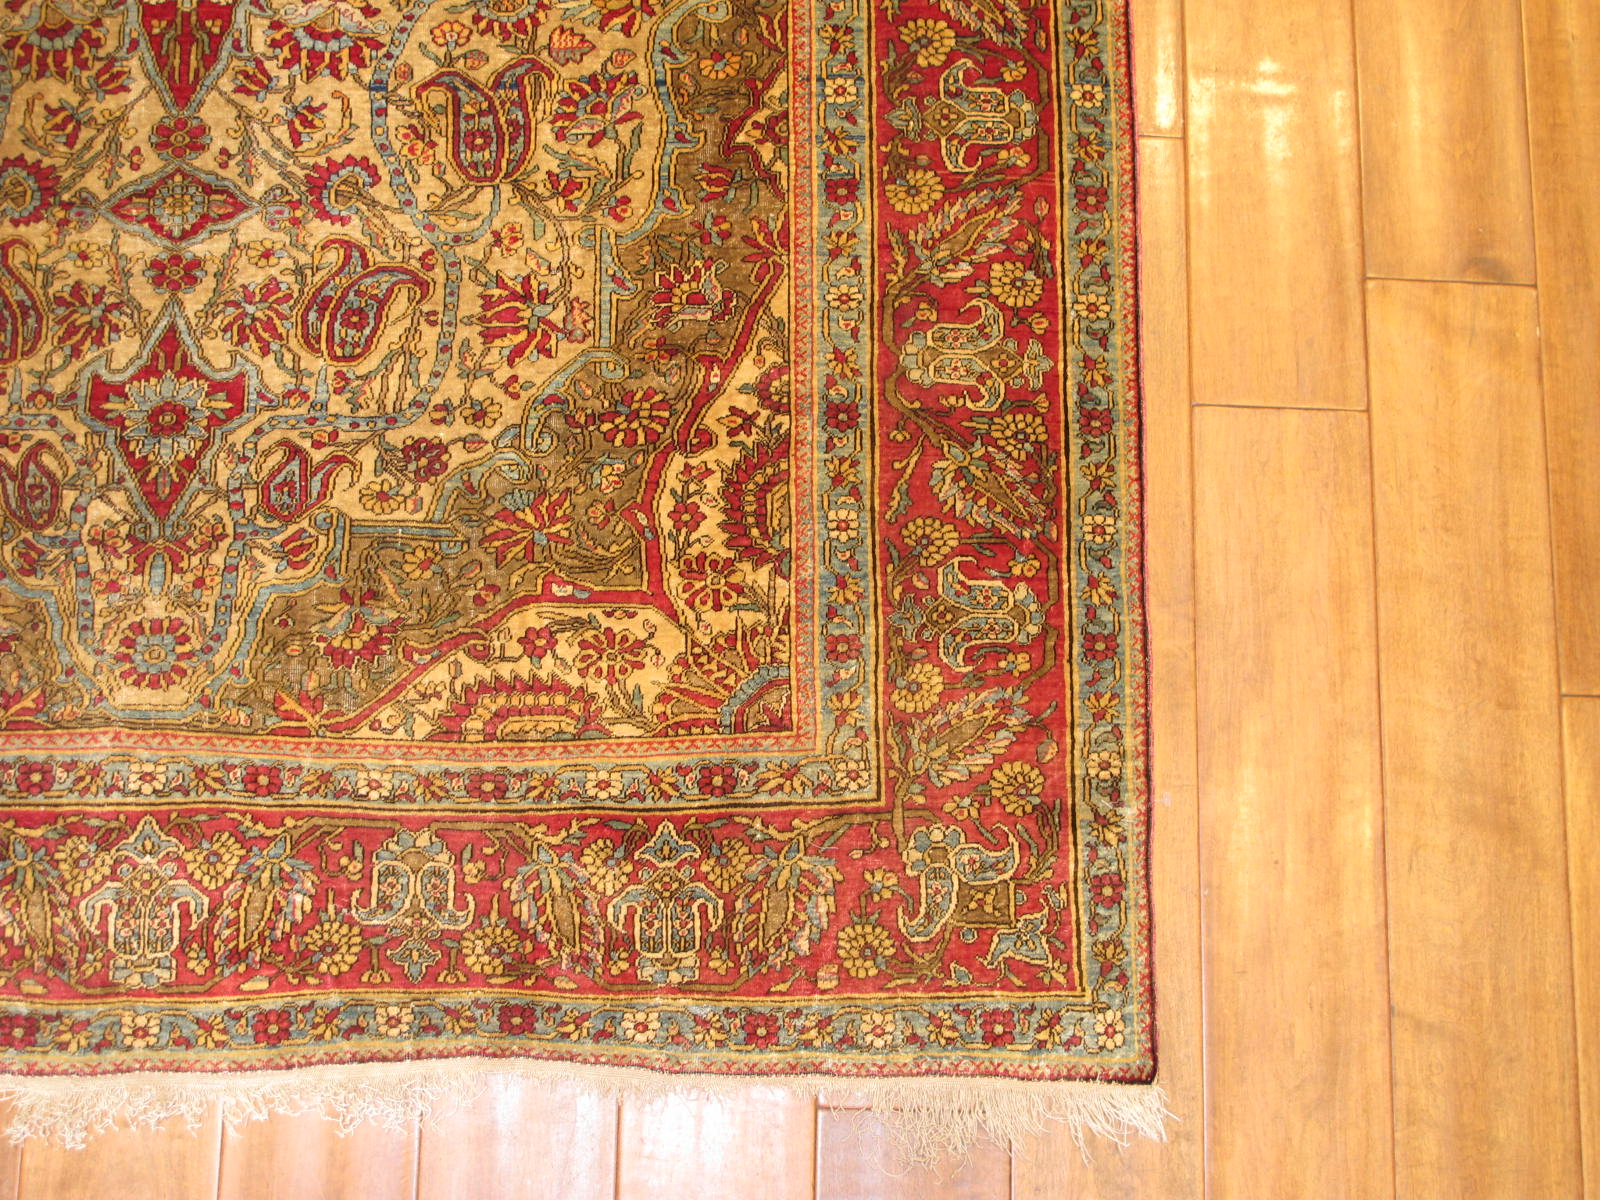 23206 antique persian kashan mohtasham silk rug 4,4 x 7,4 (4)